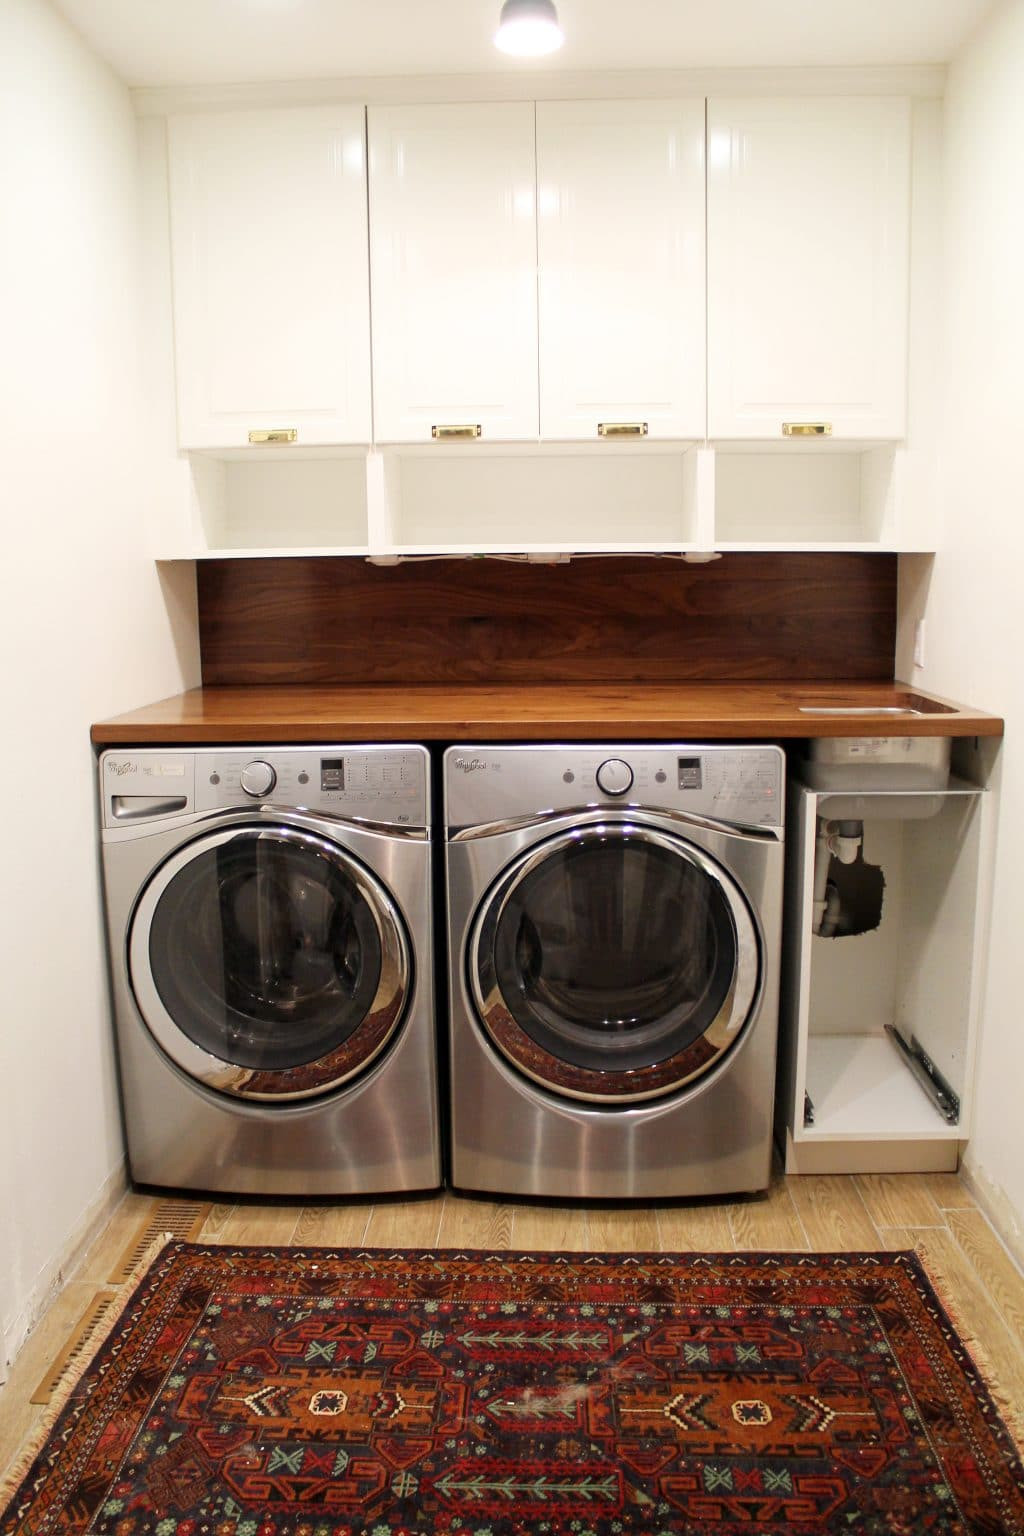 Best ideas about DIY Laundry Room Countertop . Save or Pin A Walnut Counter And Backsplash in the Laundry Room Now.